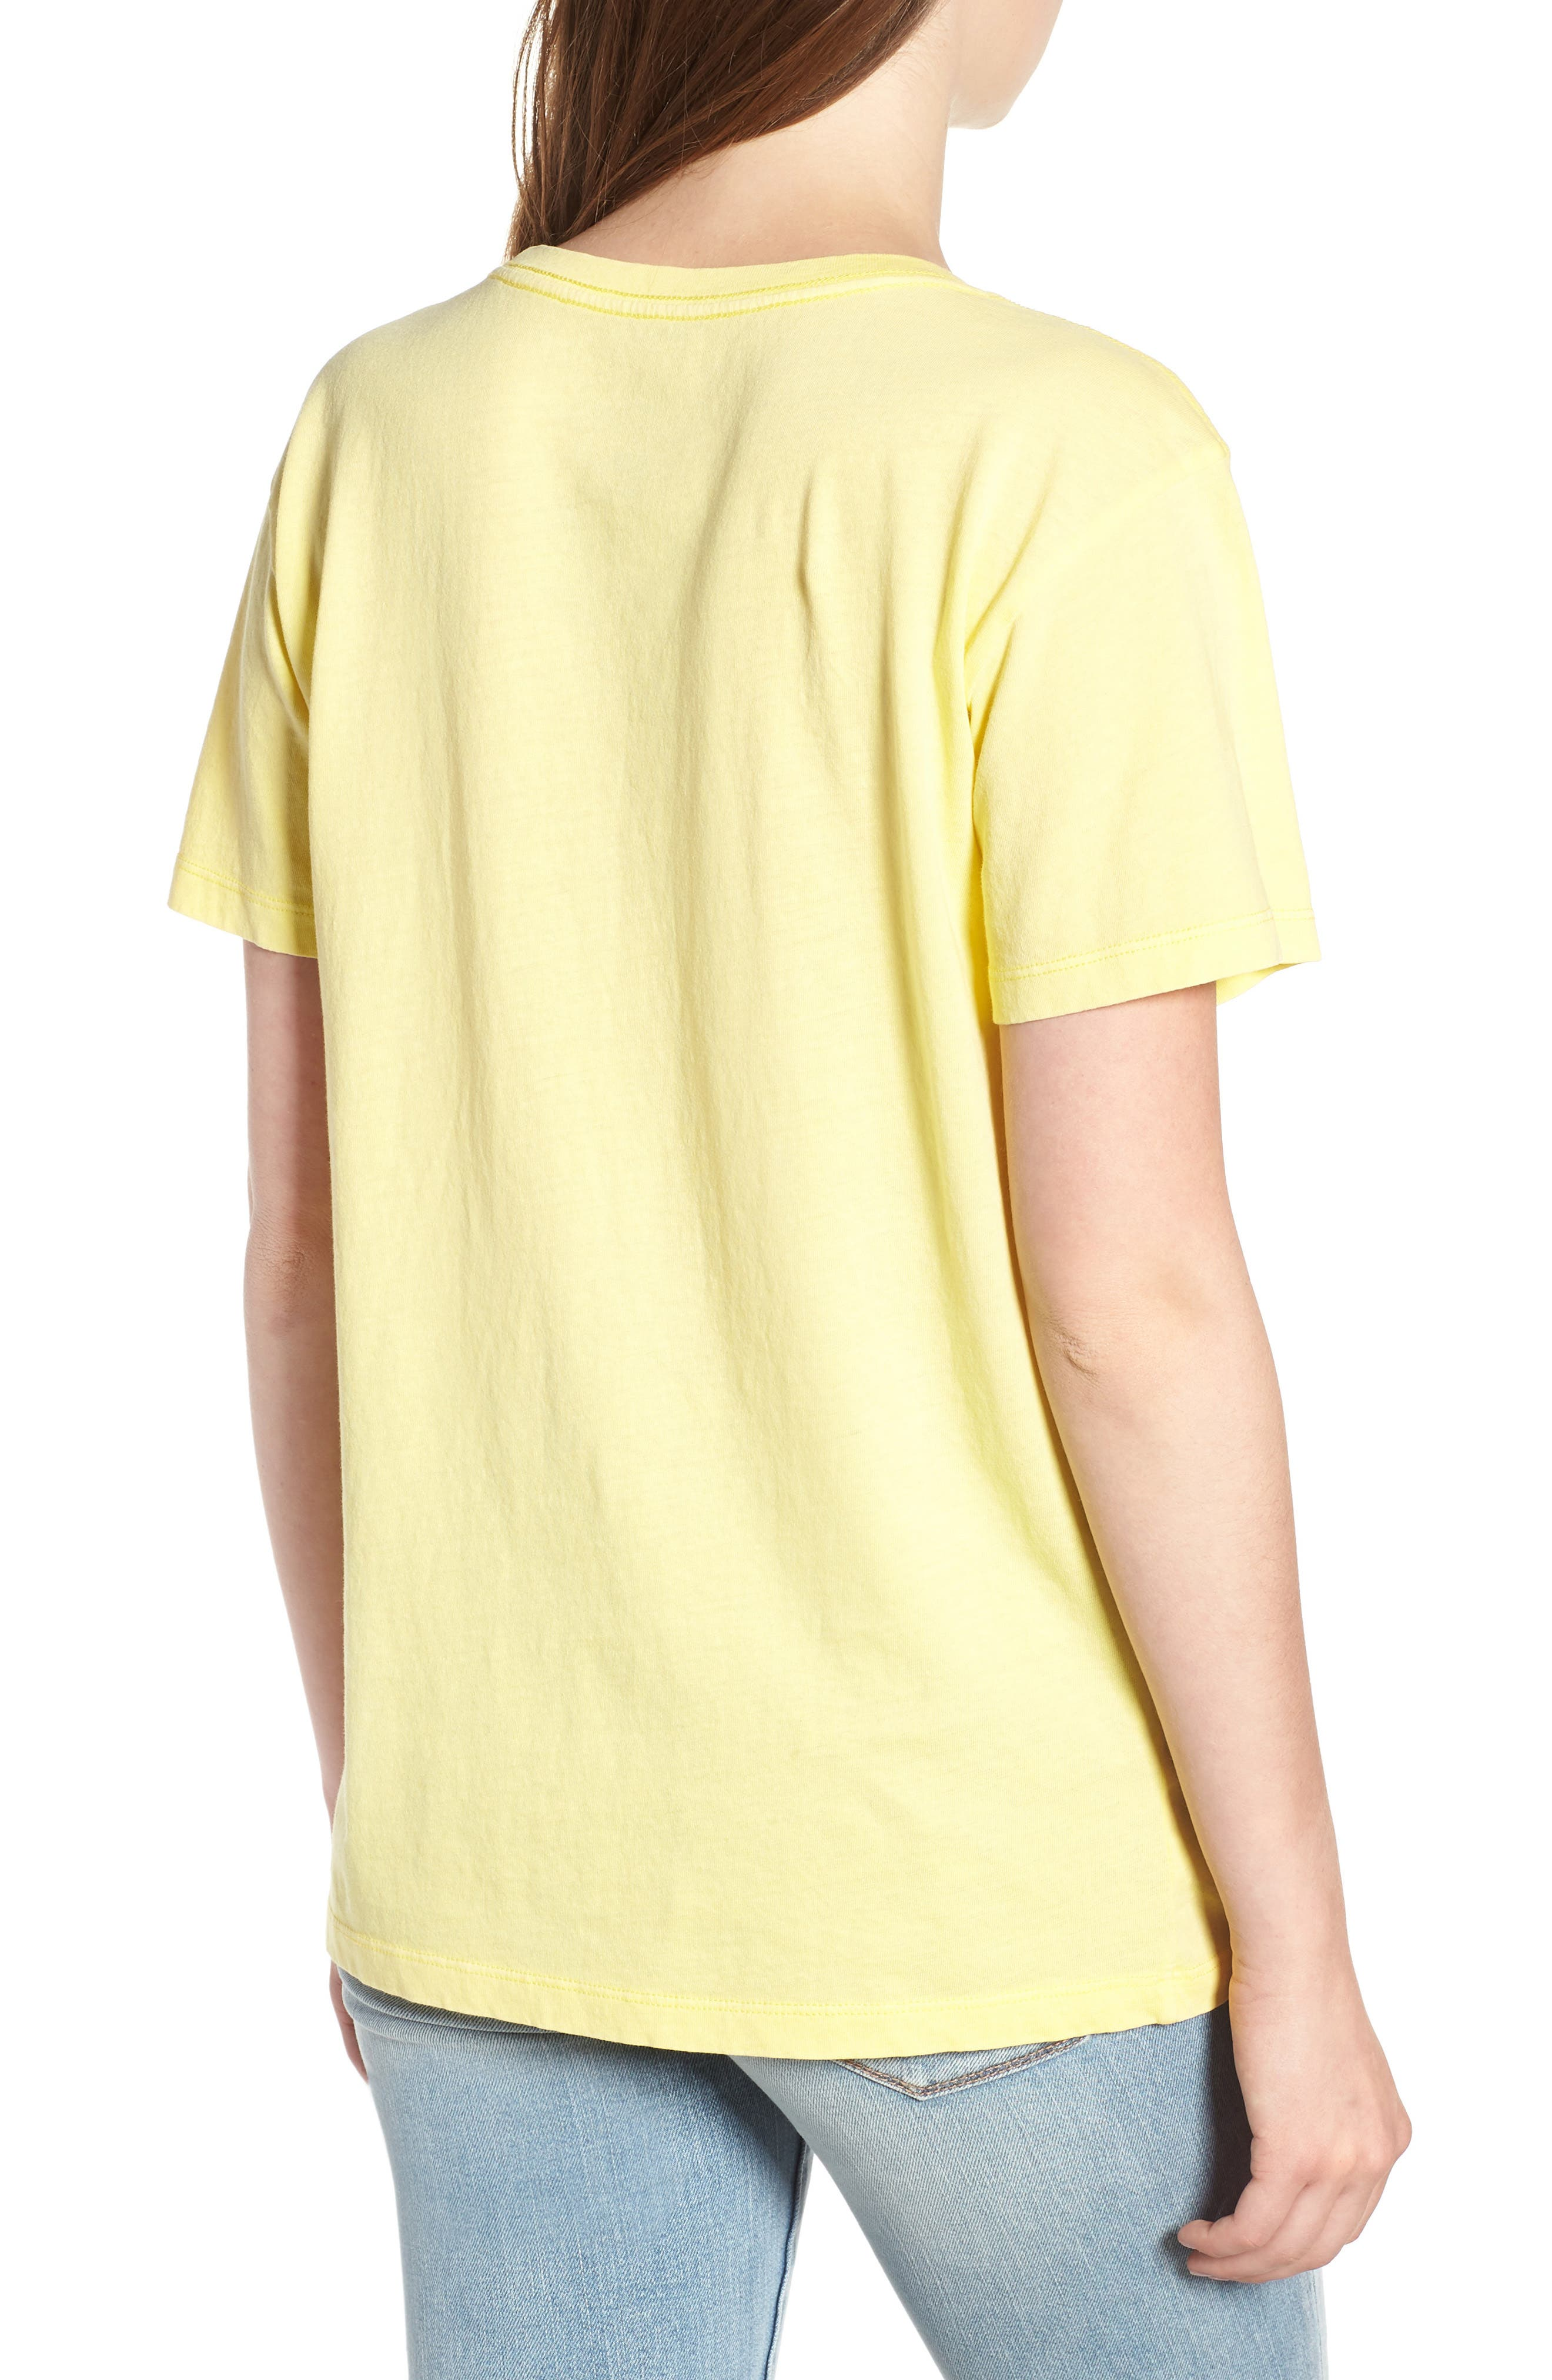 Yosemite Graphic Tee,                             Alternate thumbnail 2, color,                             Washed Yellow